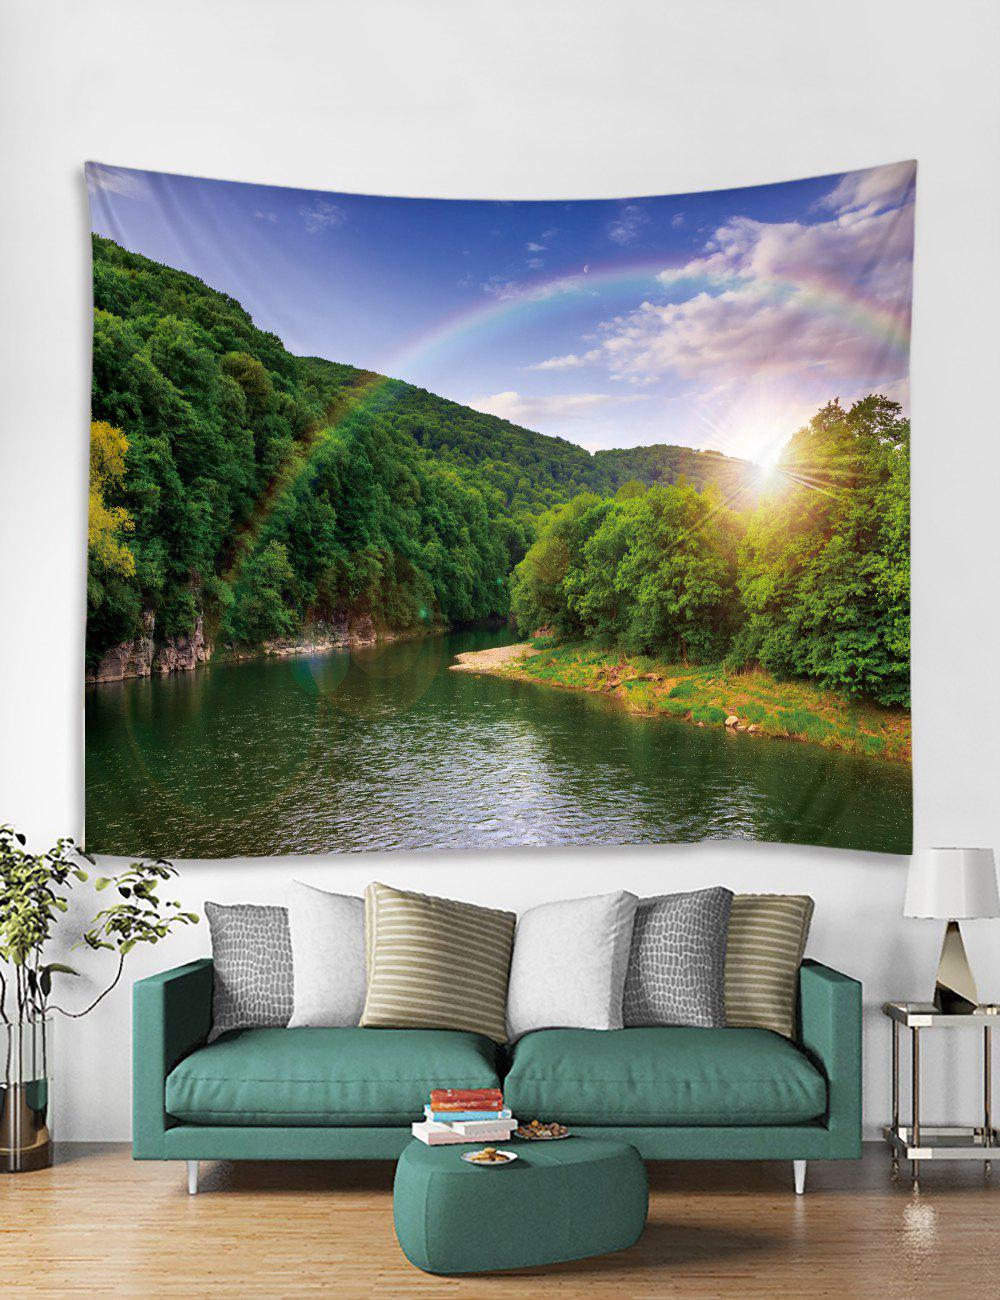 Discount Landscapes Printed Tapestry Art Decoration